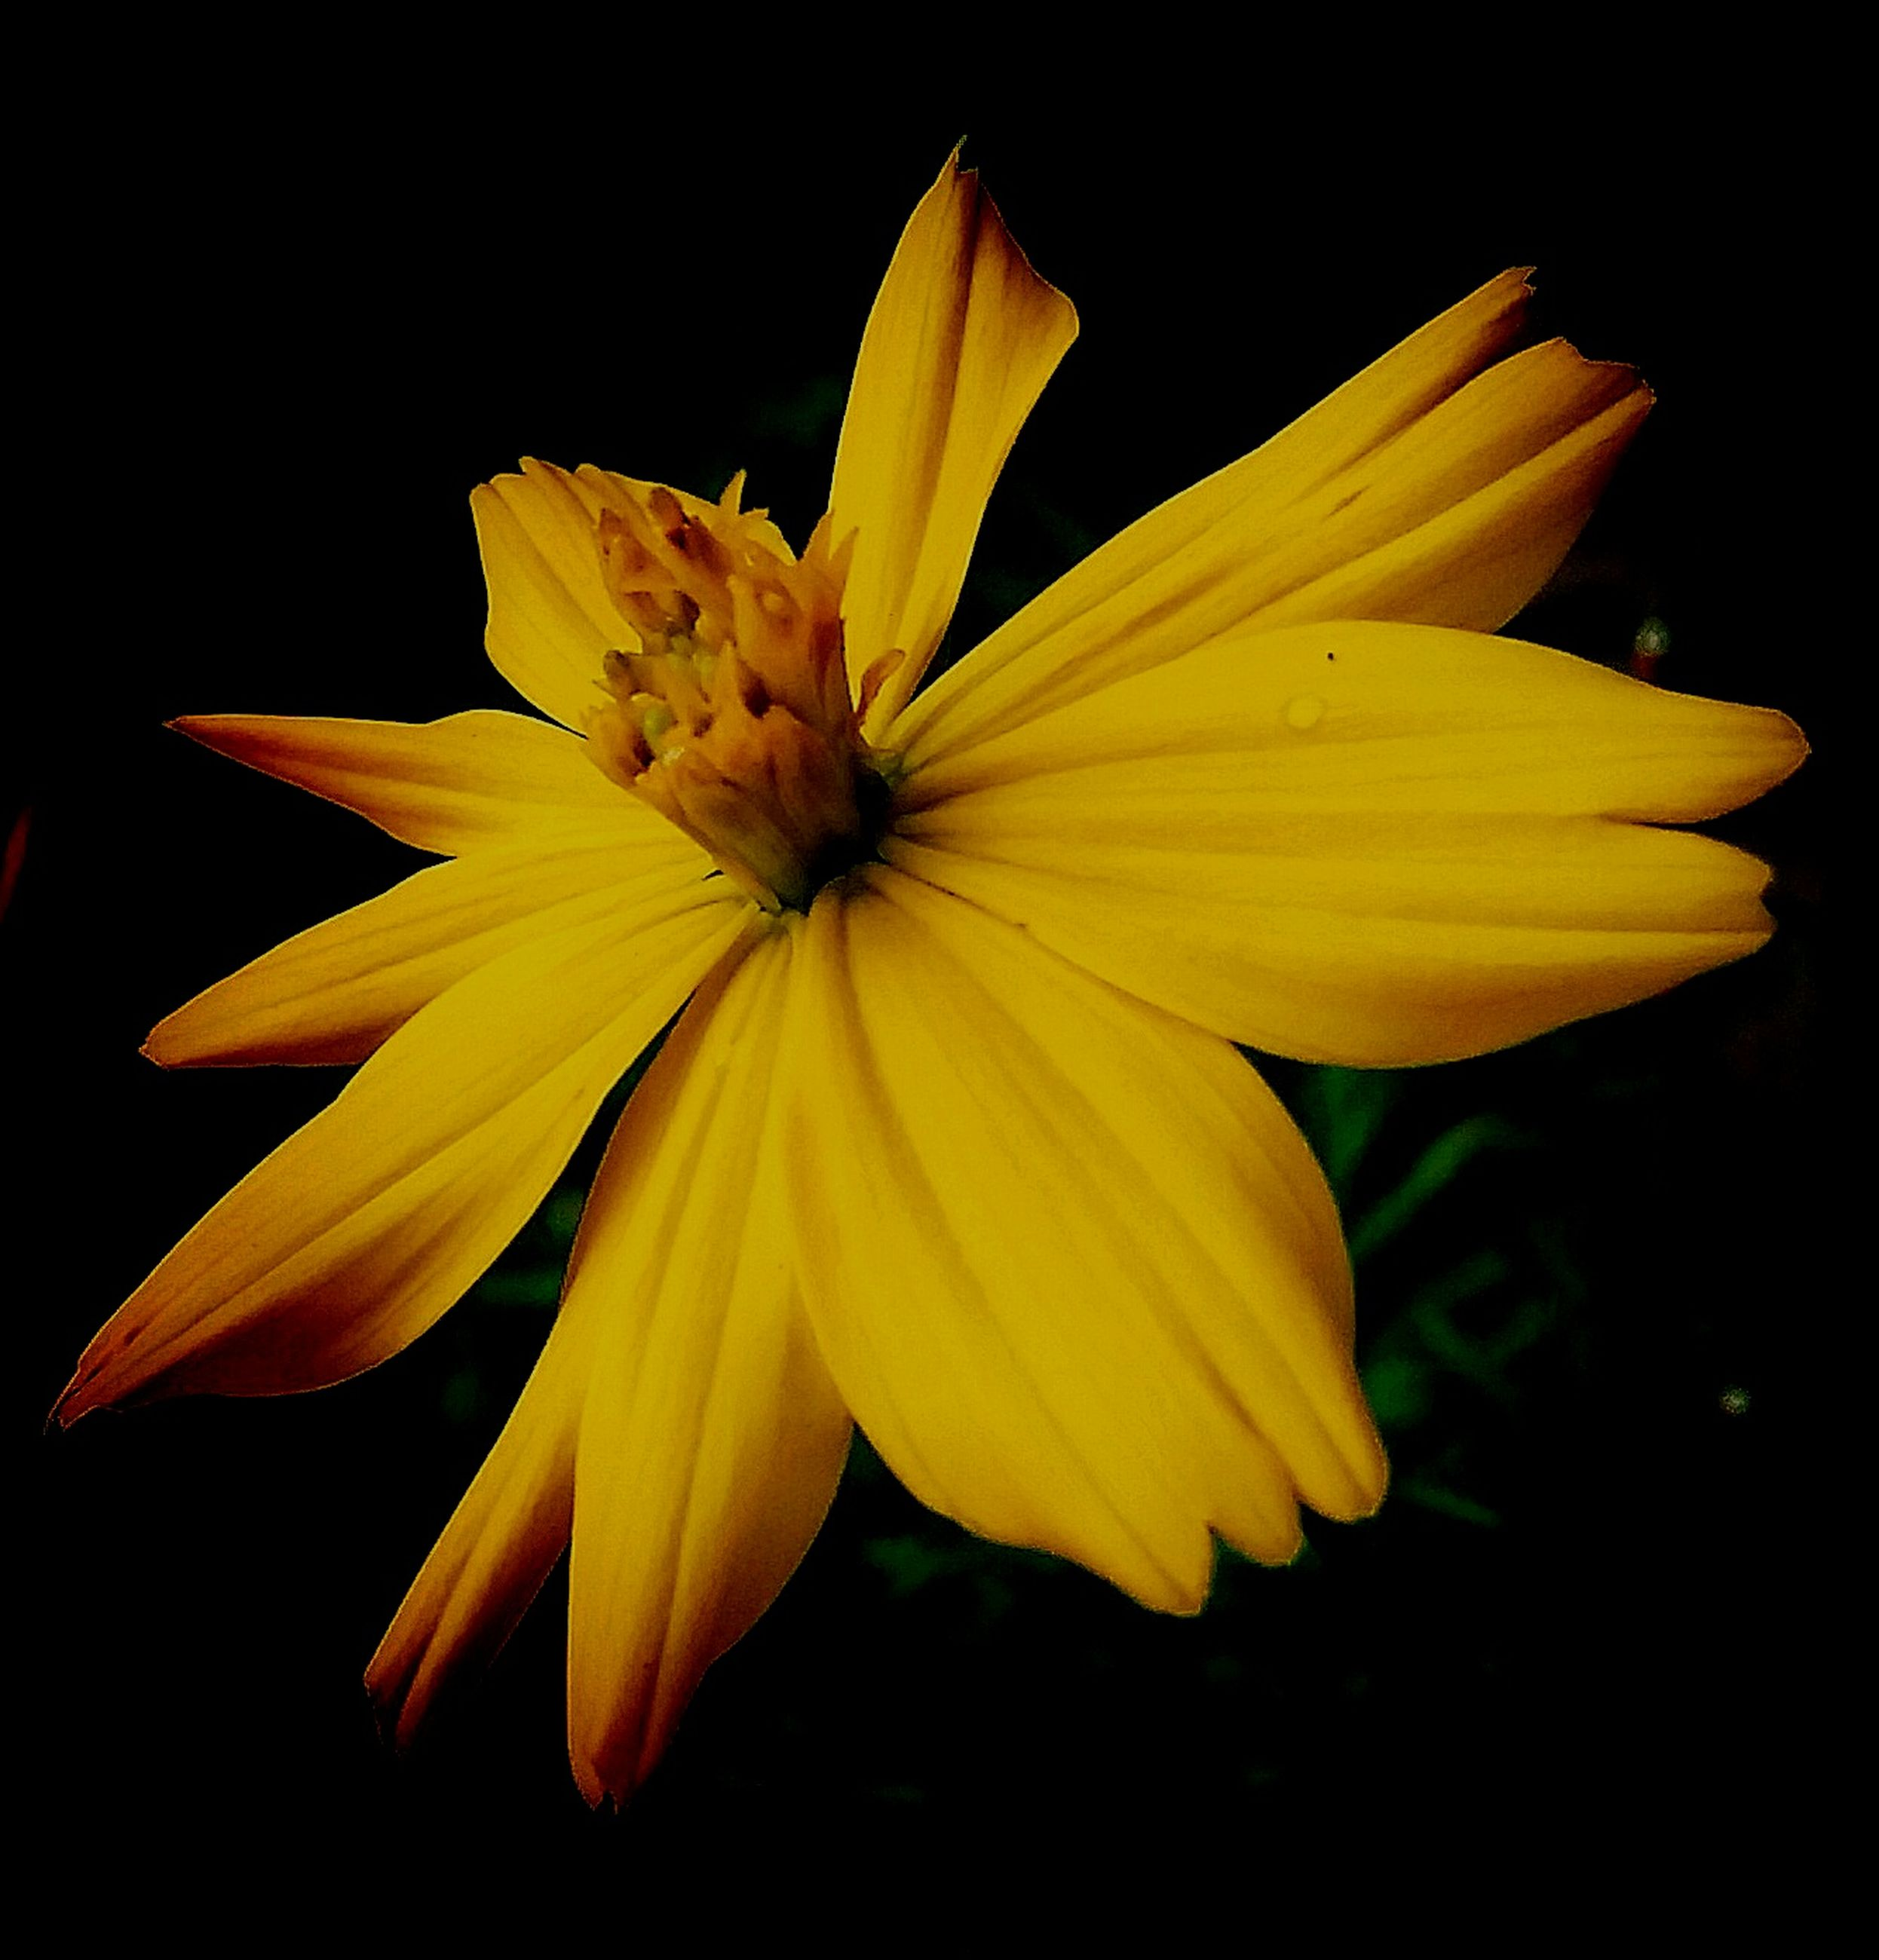 yellow, petal, vulnerability, fragility, flower, flowering plant, flower head, inflorescence, close-up, freshness, beauty in nature, studio shot, plant, growth, black background, no people, nature, pollen, botany